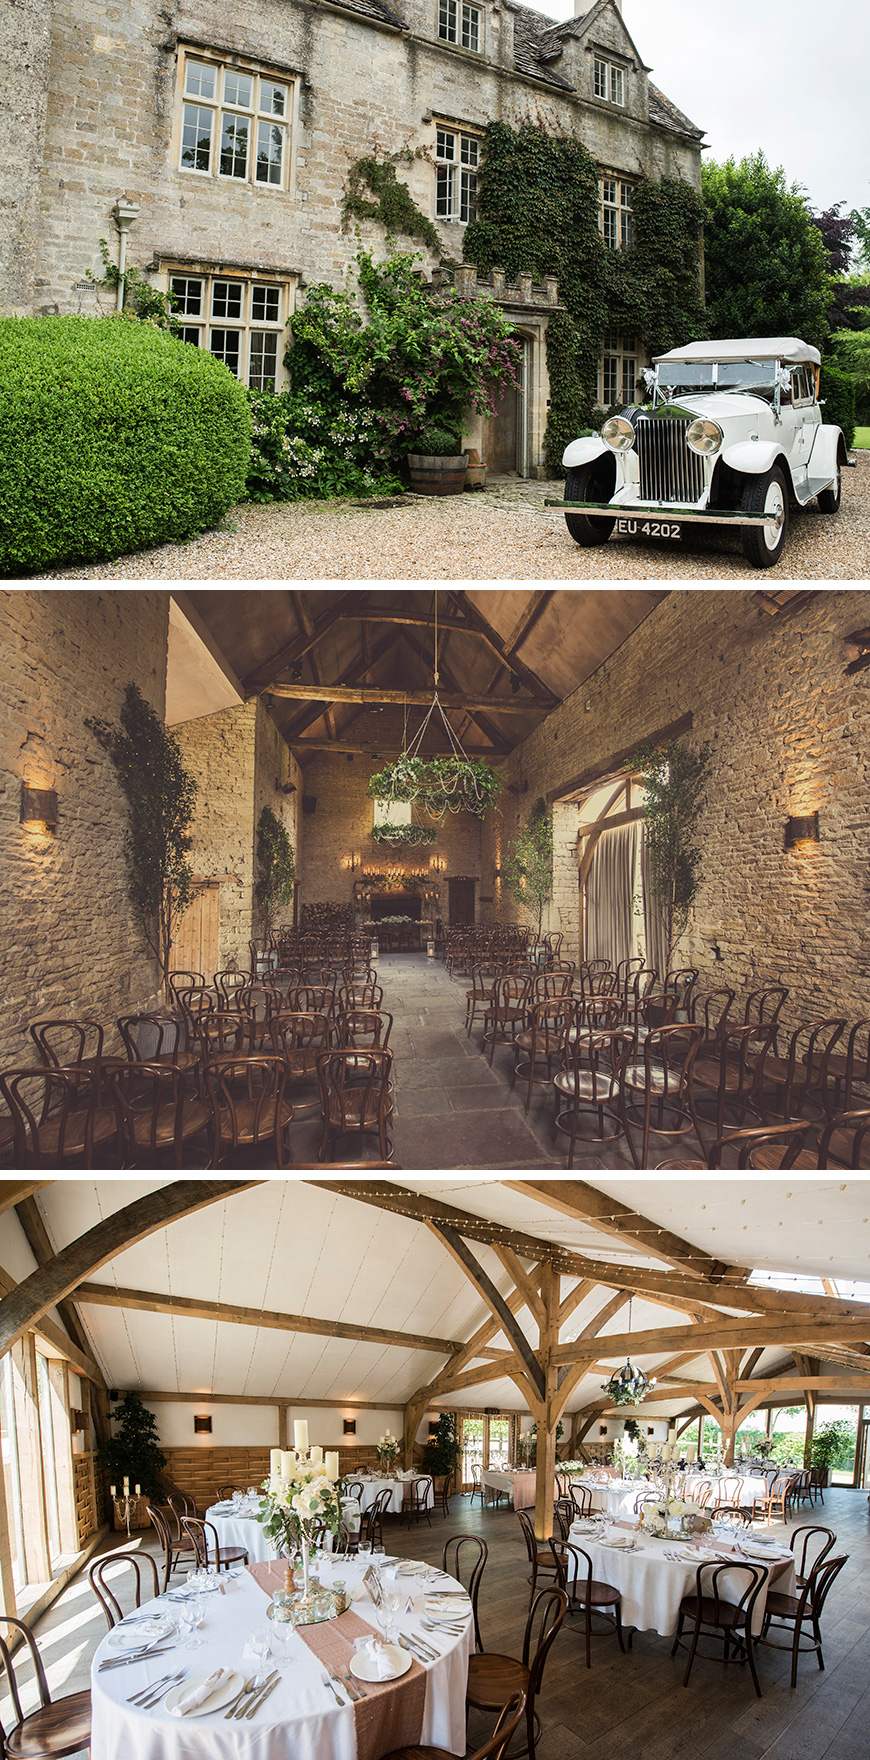 Real Wedding - Sky and Lee's Vintage Wedding At Cripps Barn - The venue | CHWV